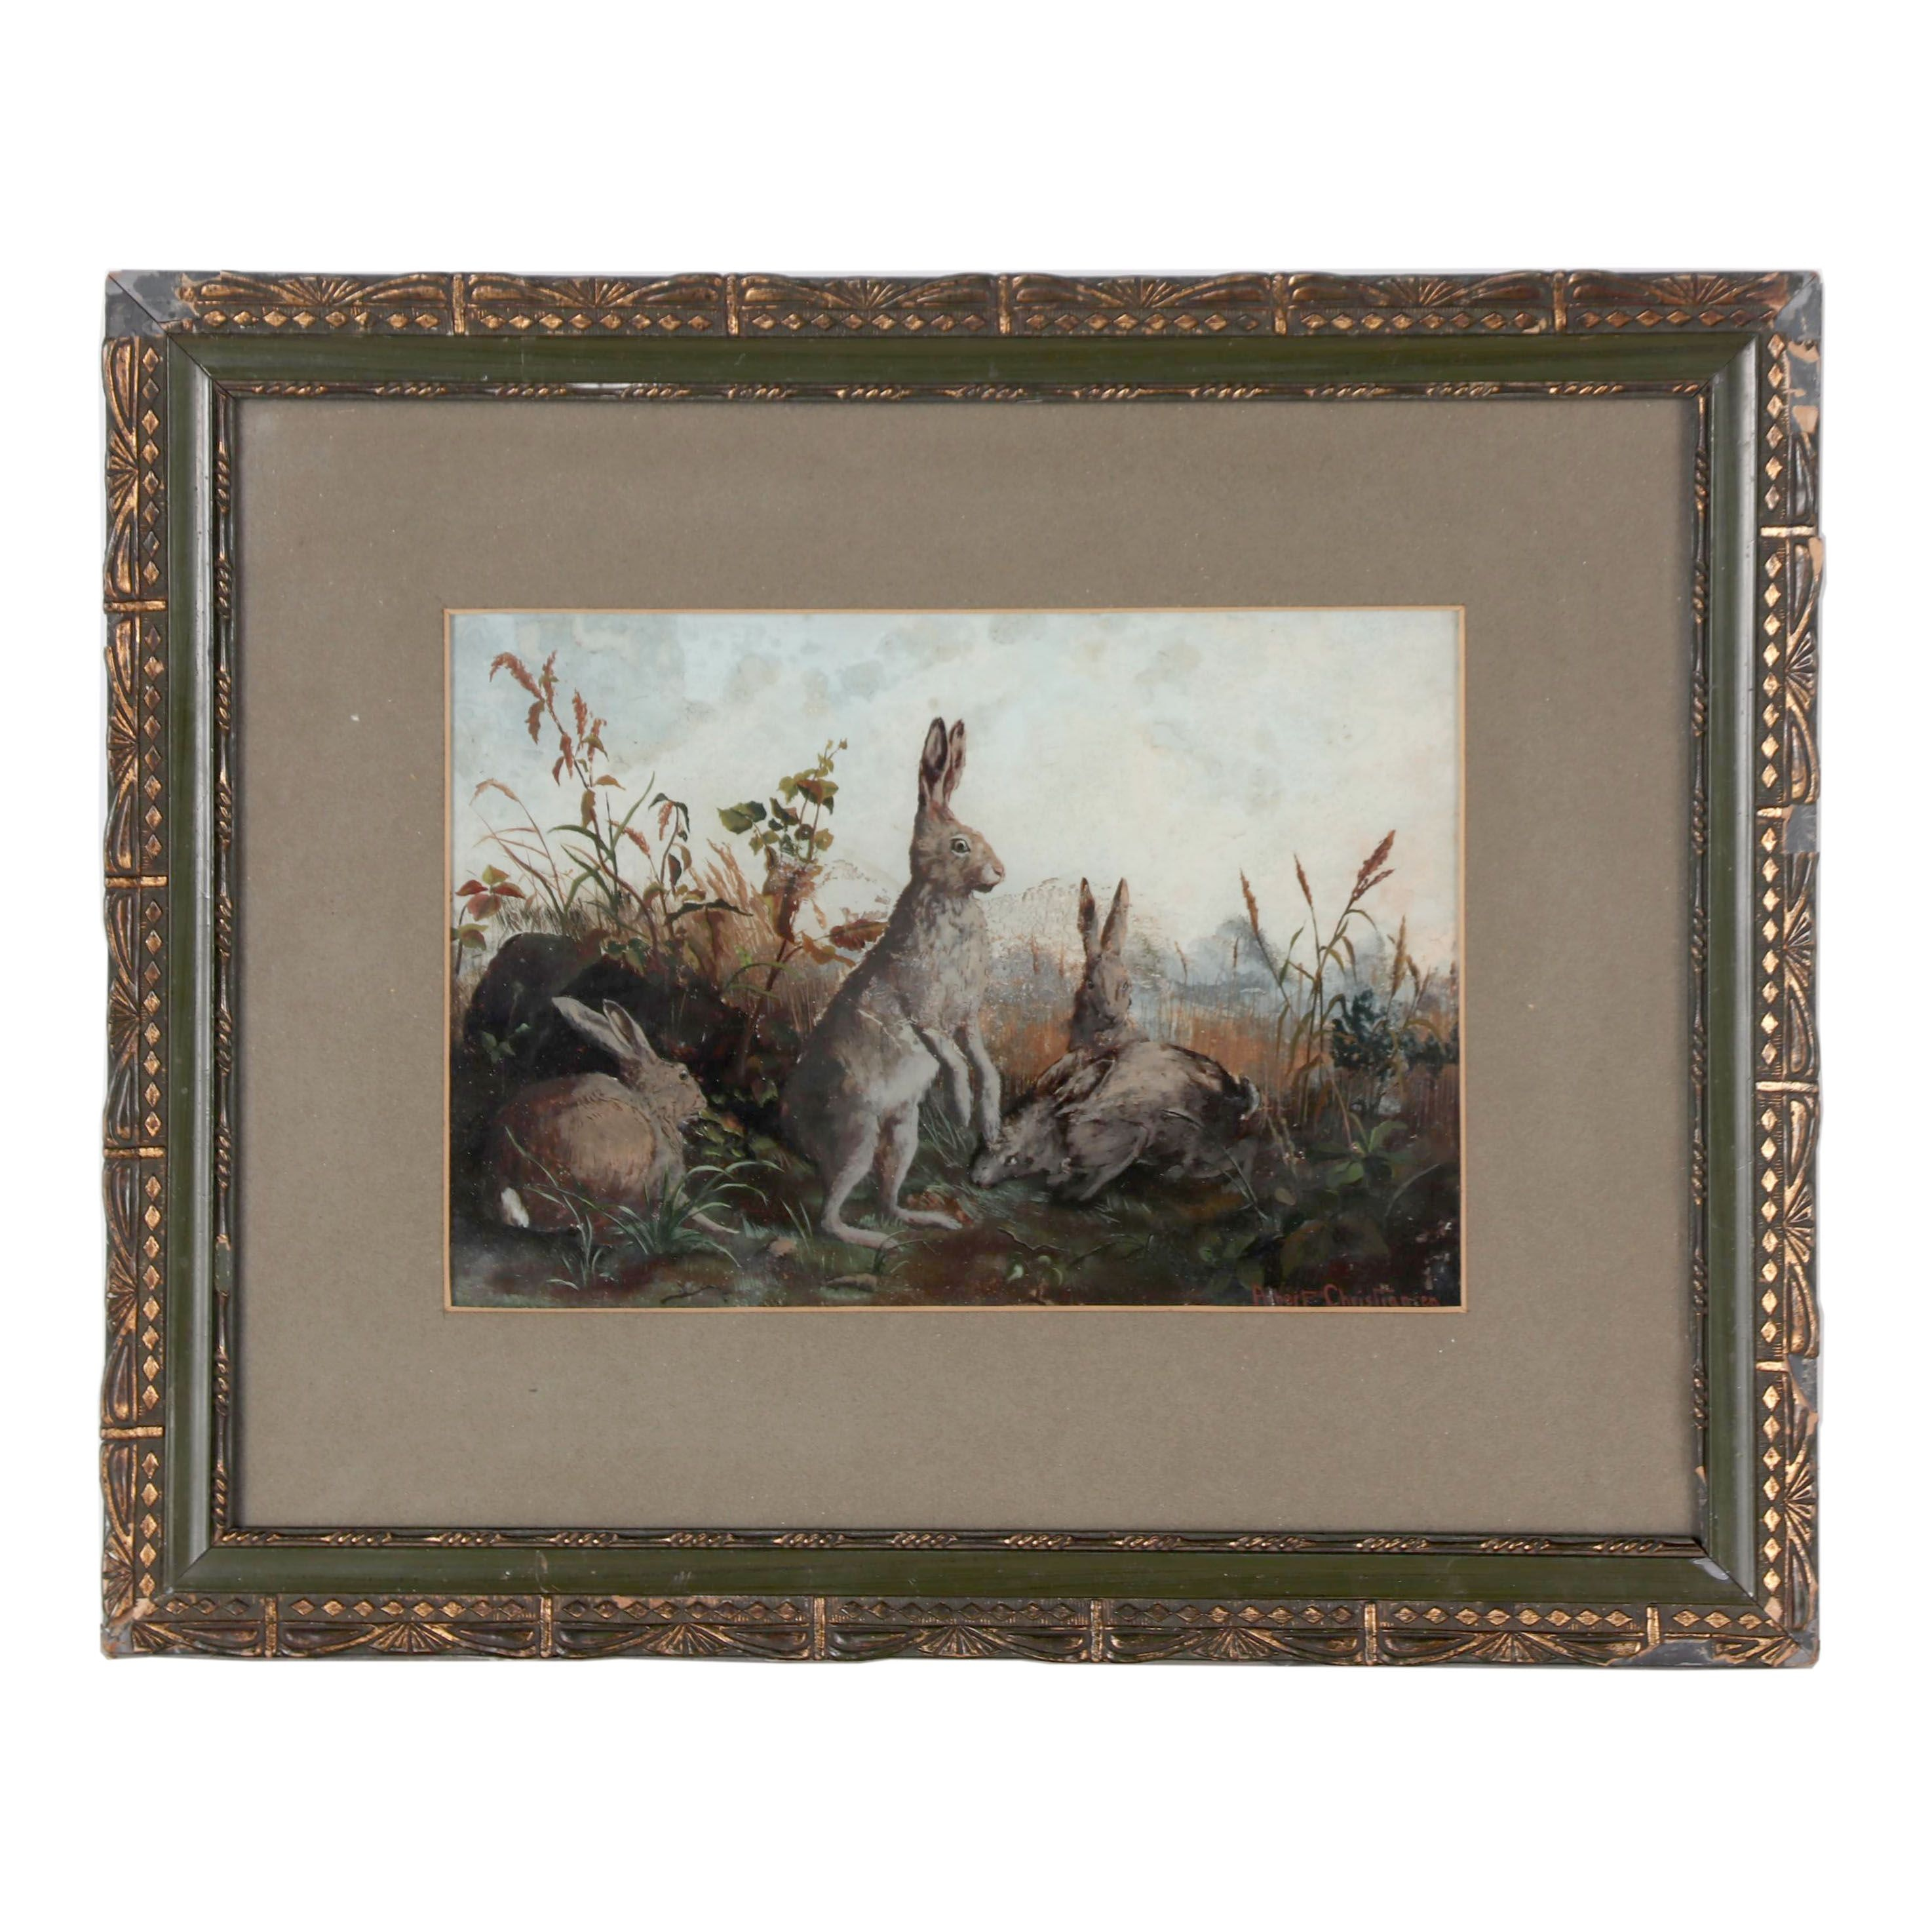 Albert Christiansen 19th Century Reverse Glass Oil Painting